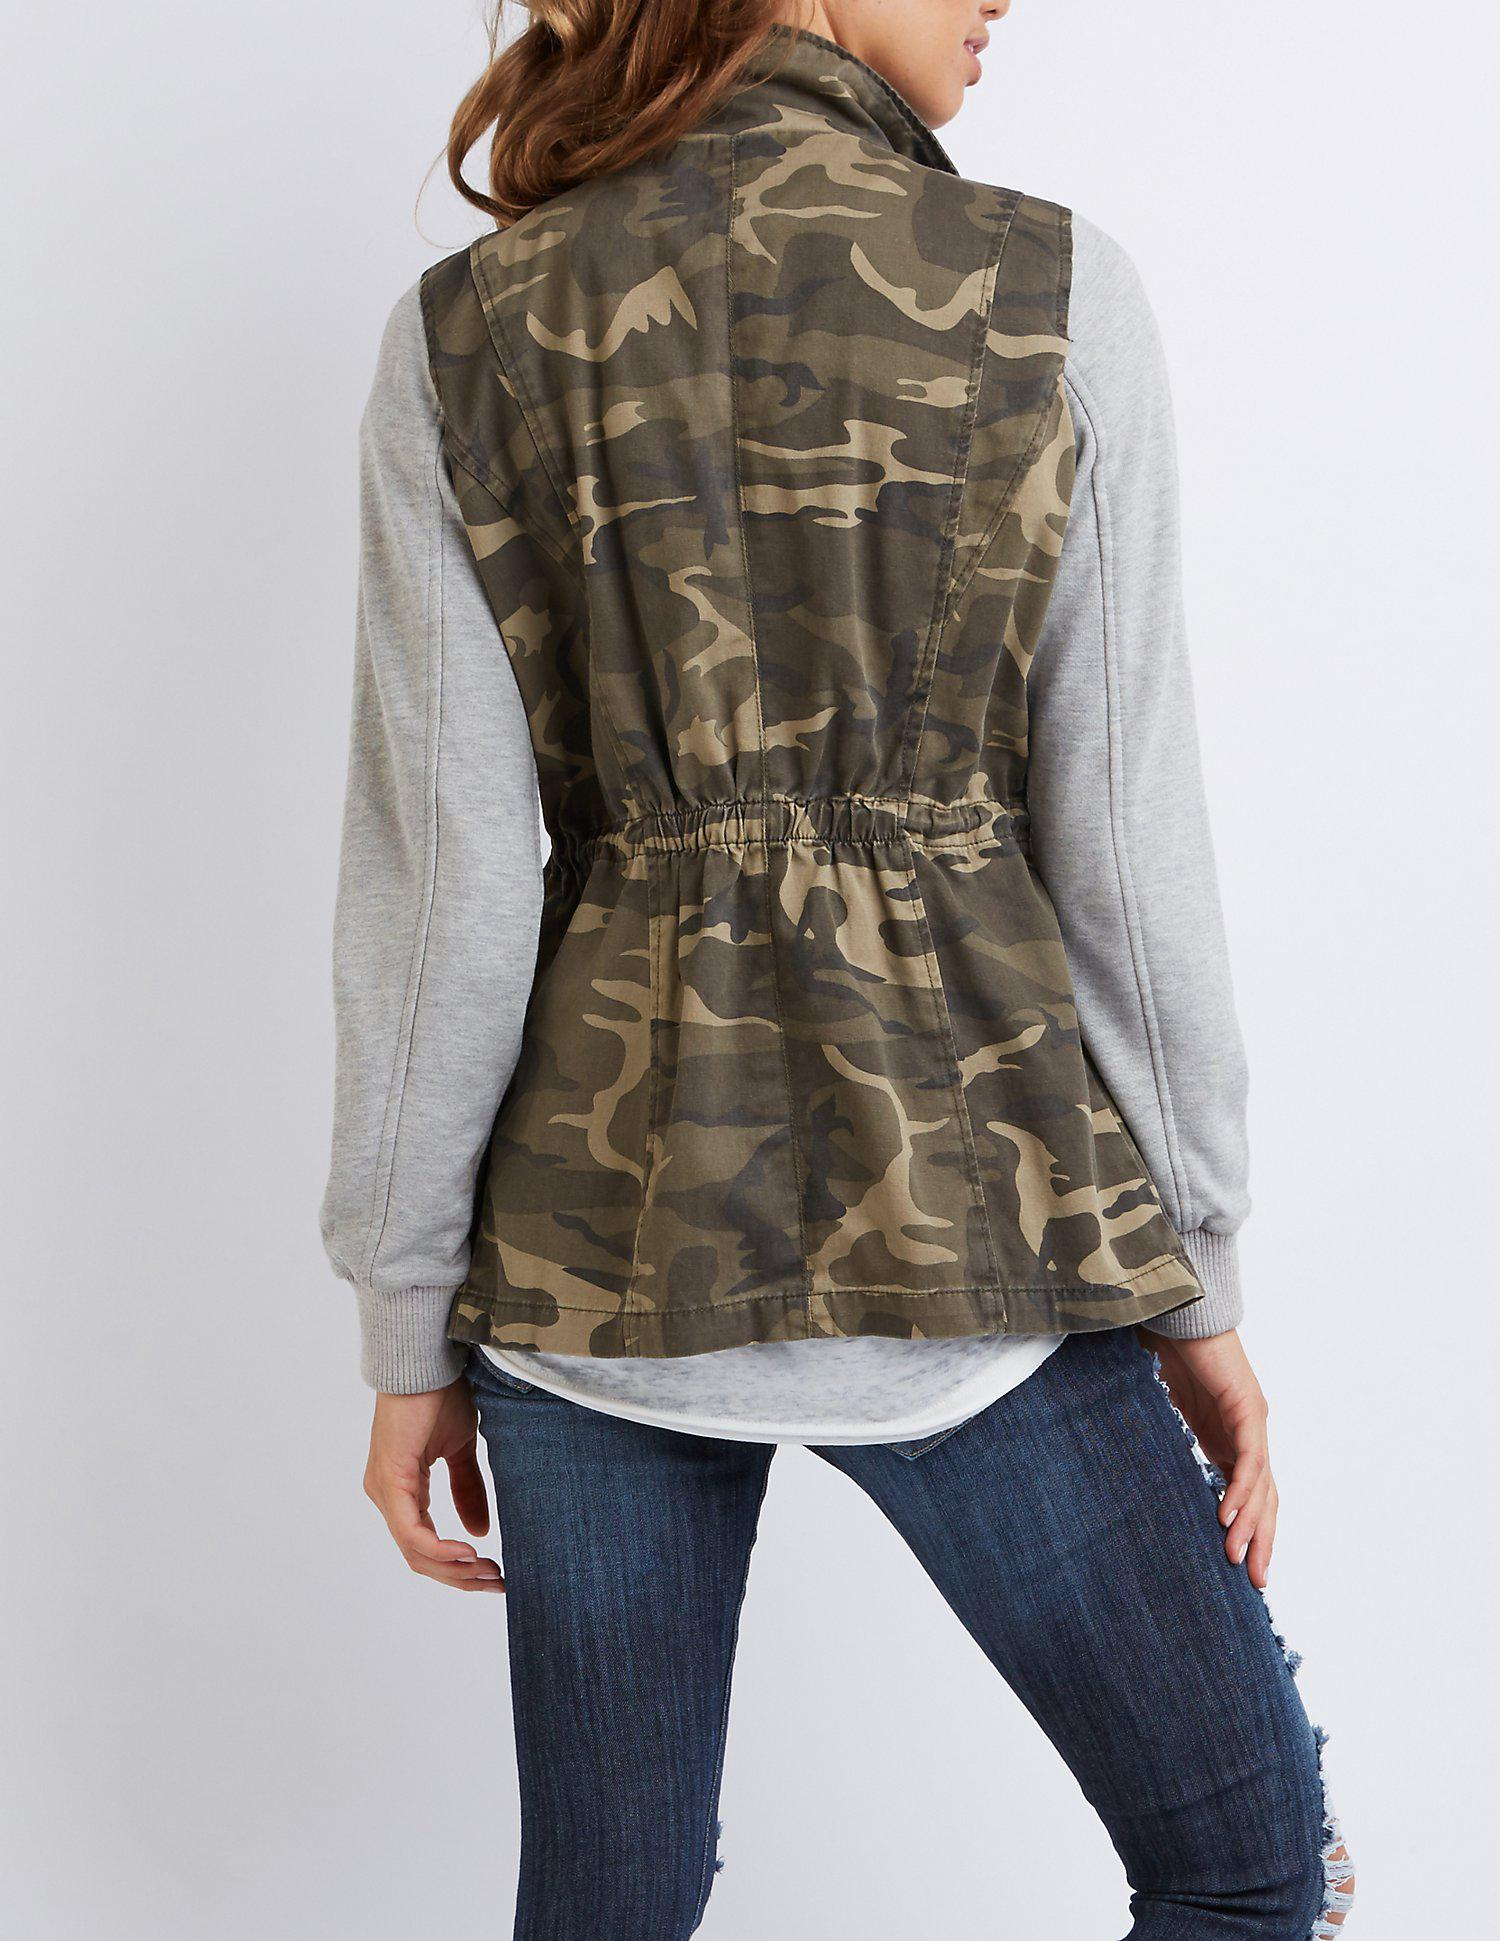 0ee8d3d4bcd Lyst - Charlotte Russe Camo Knit Sleeves Anorak Jacket